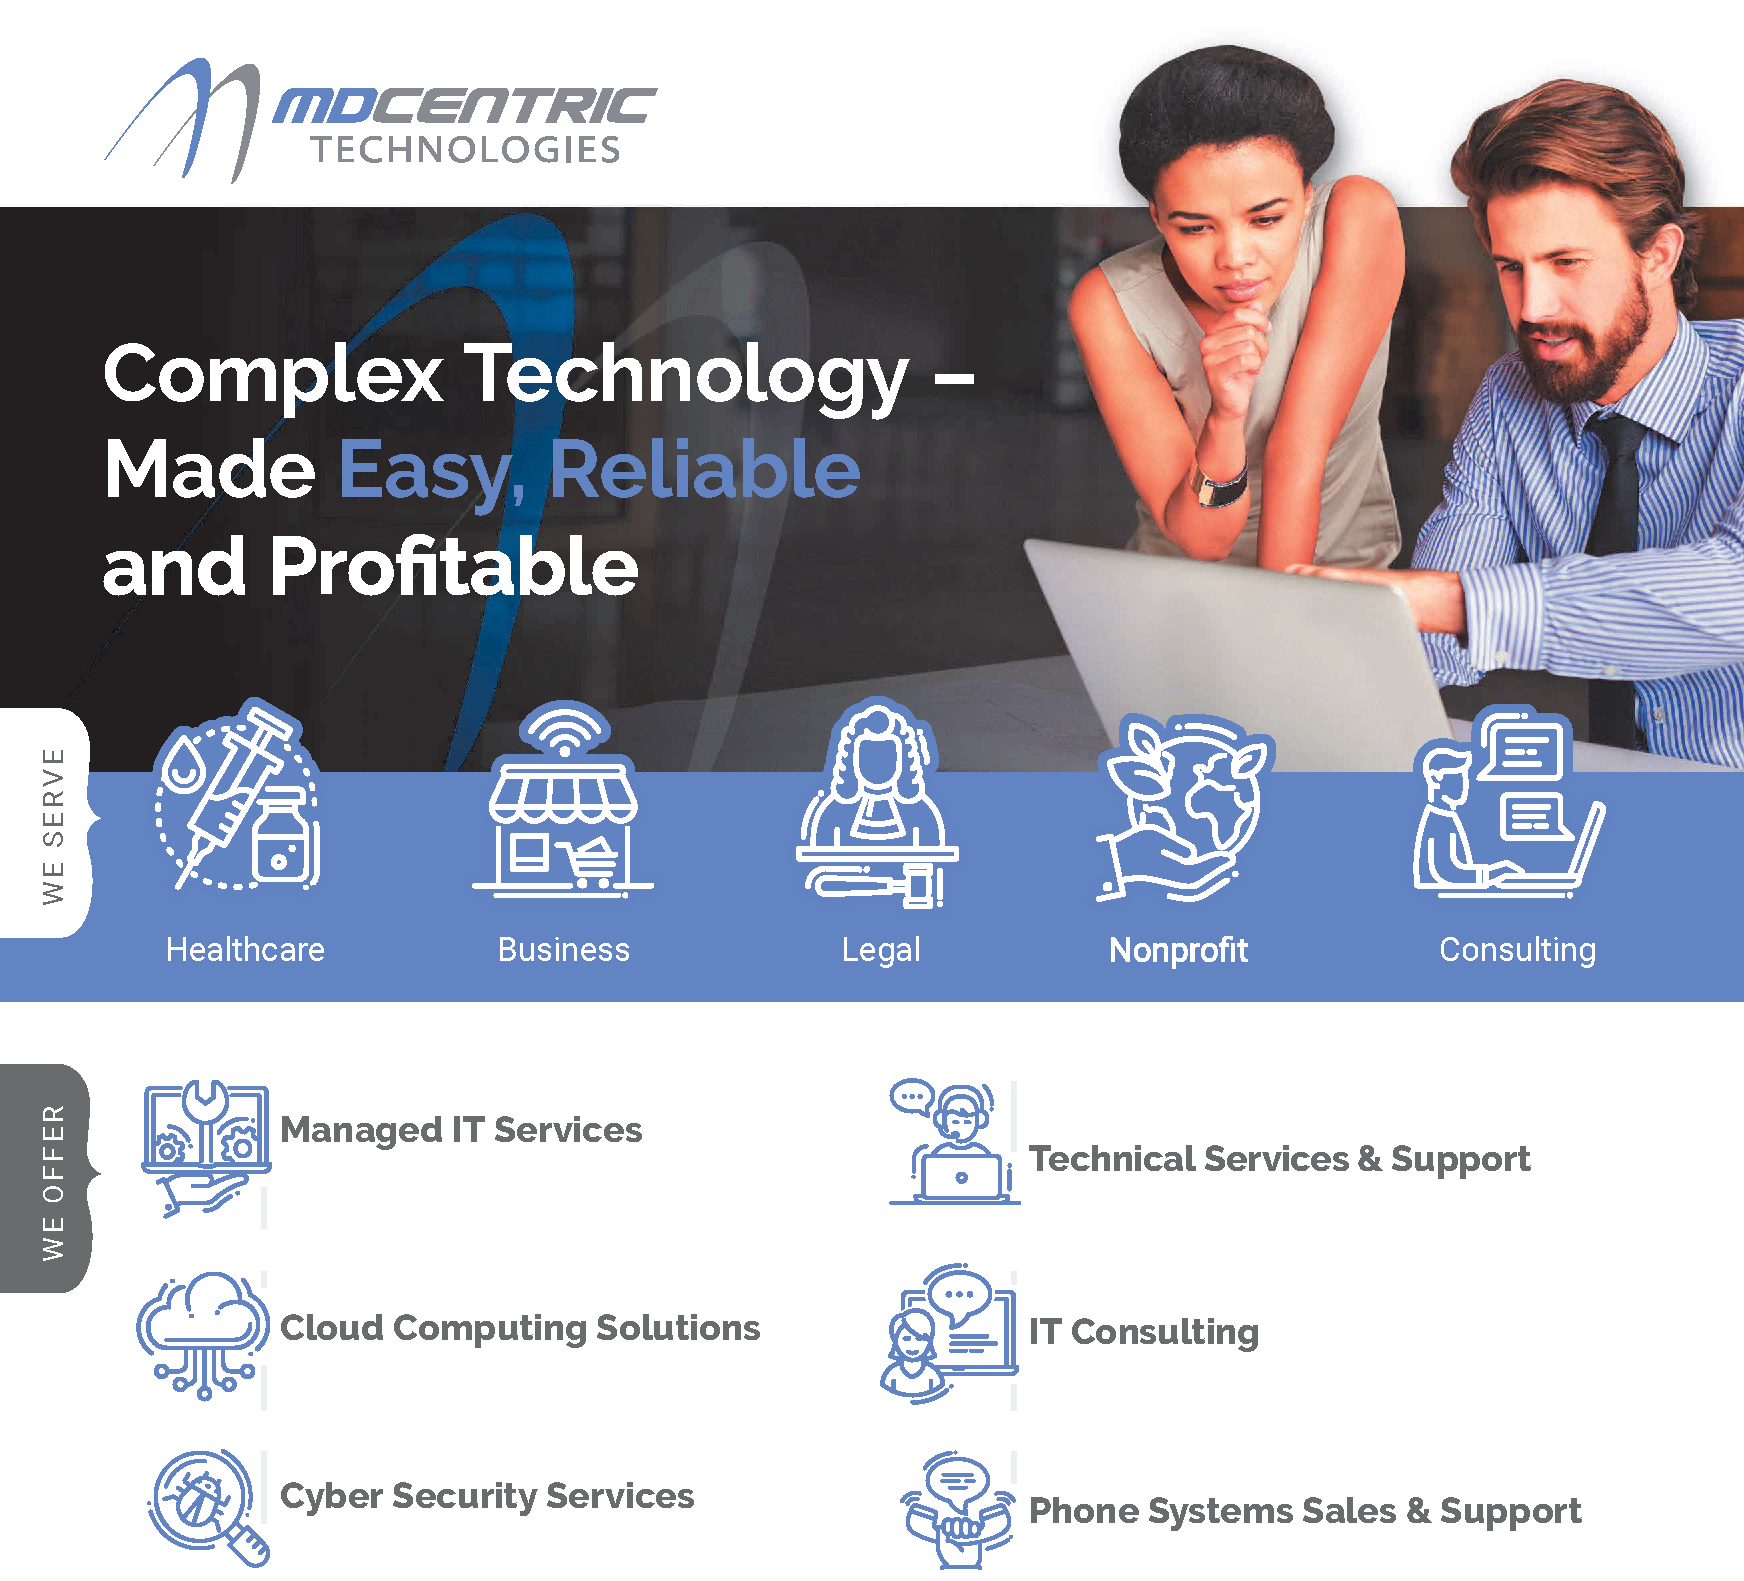 MD centric Technologies Services Summary Graphic